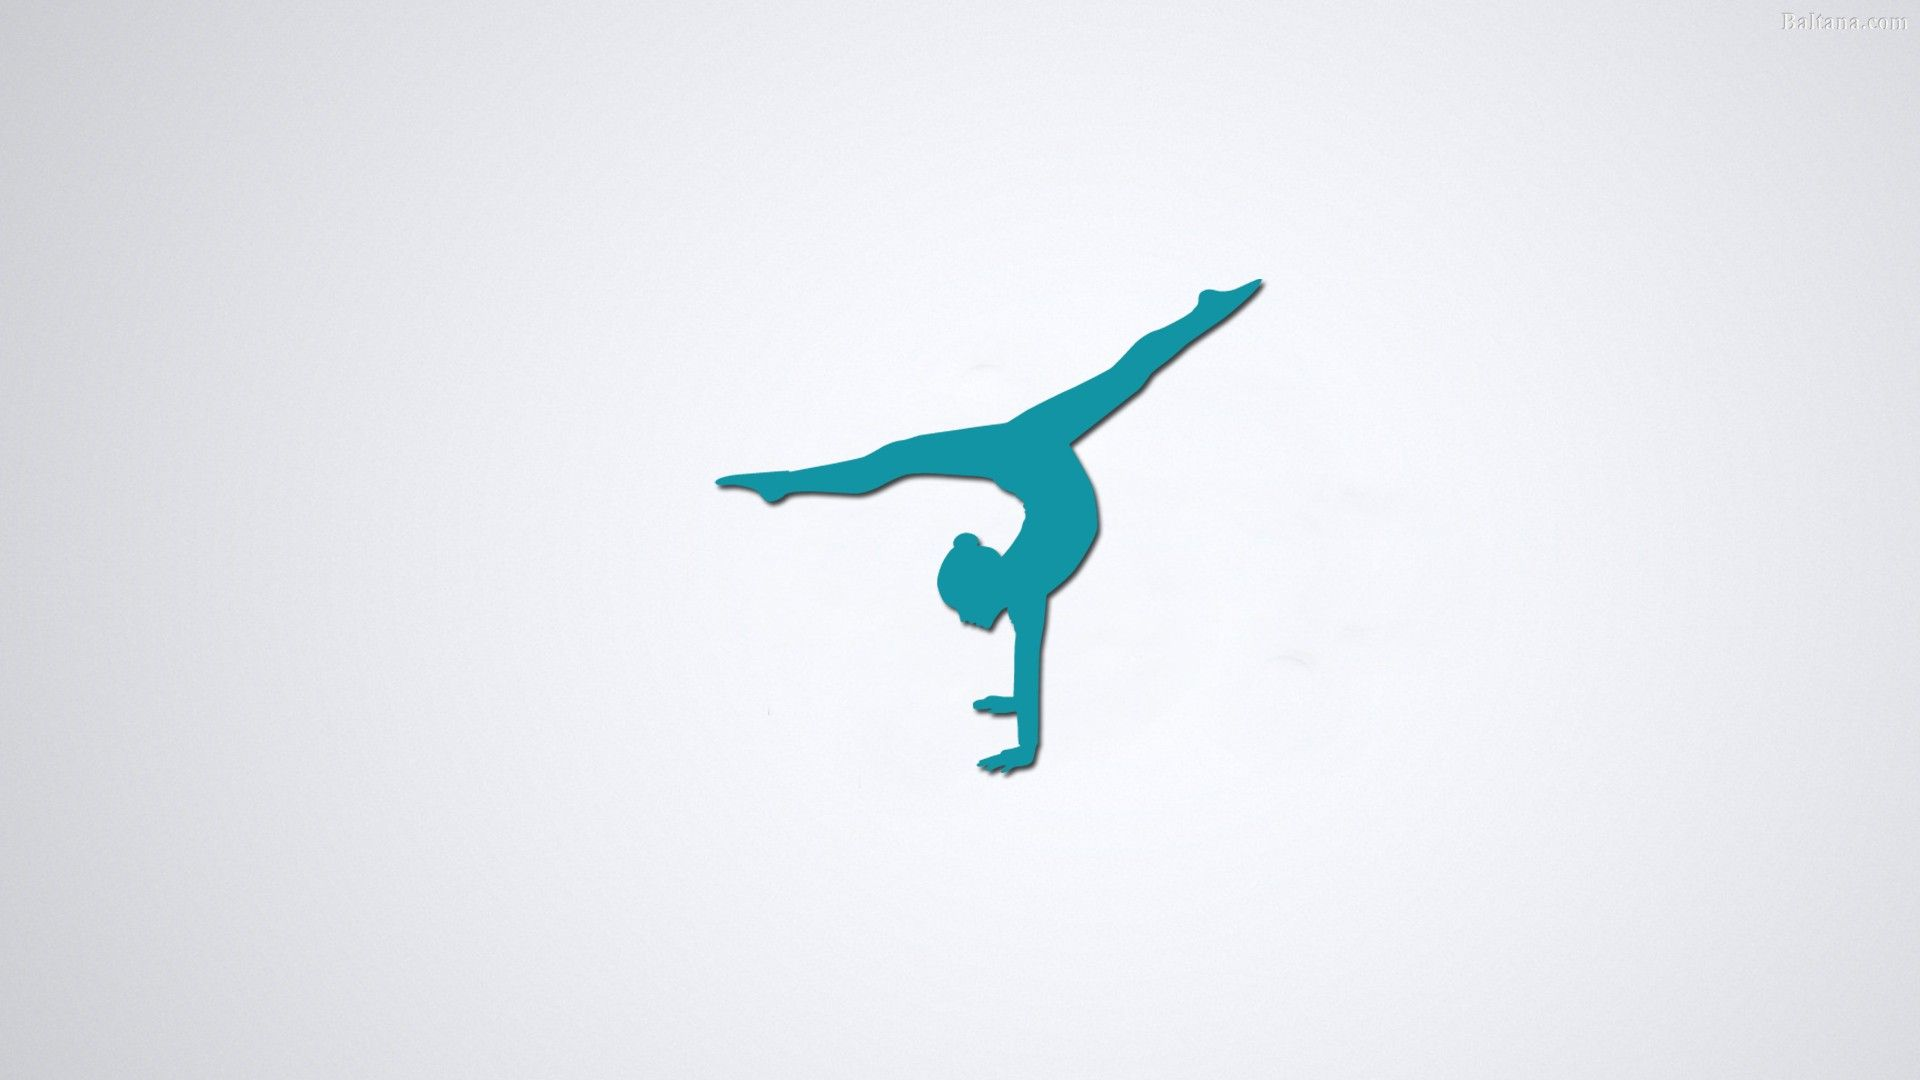 Wallpapers Gymnastics Posted By John Johnson